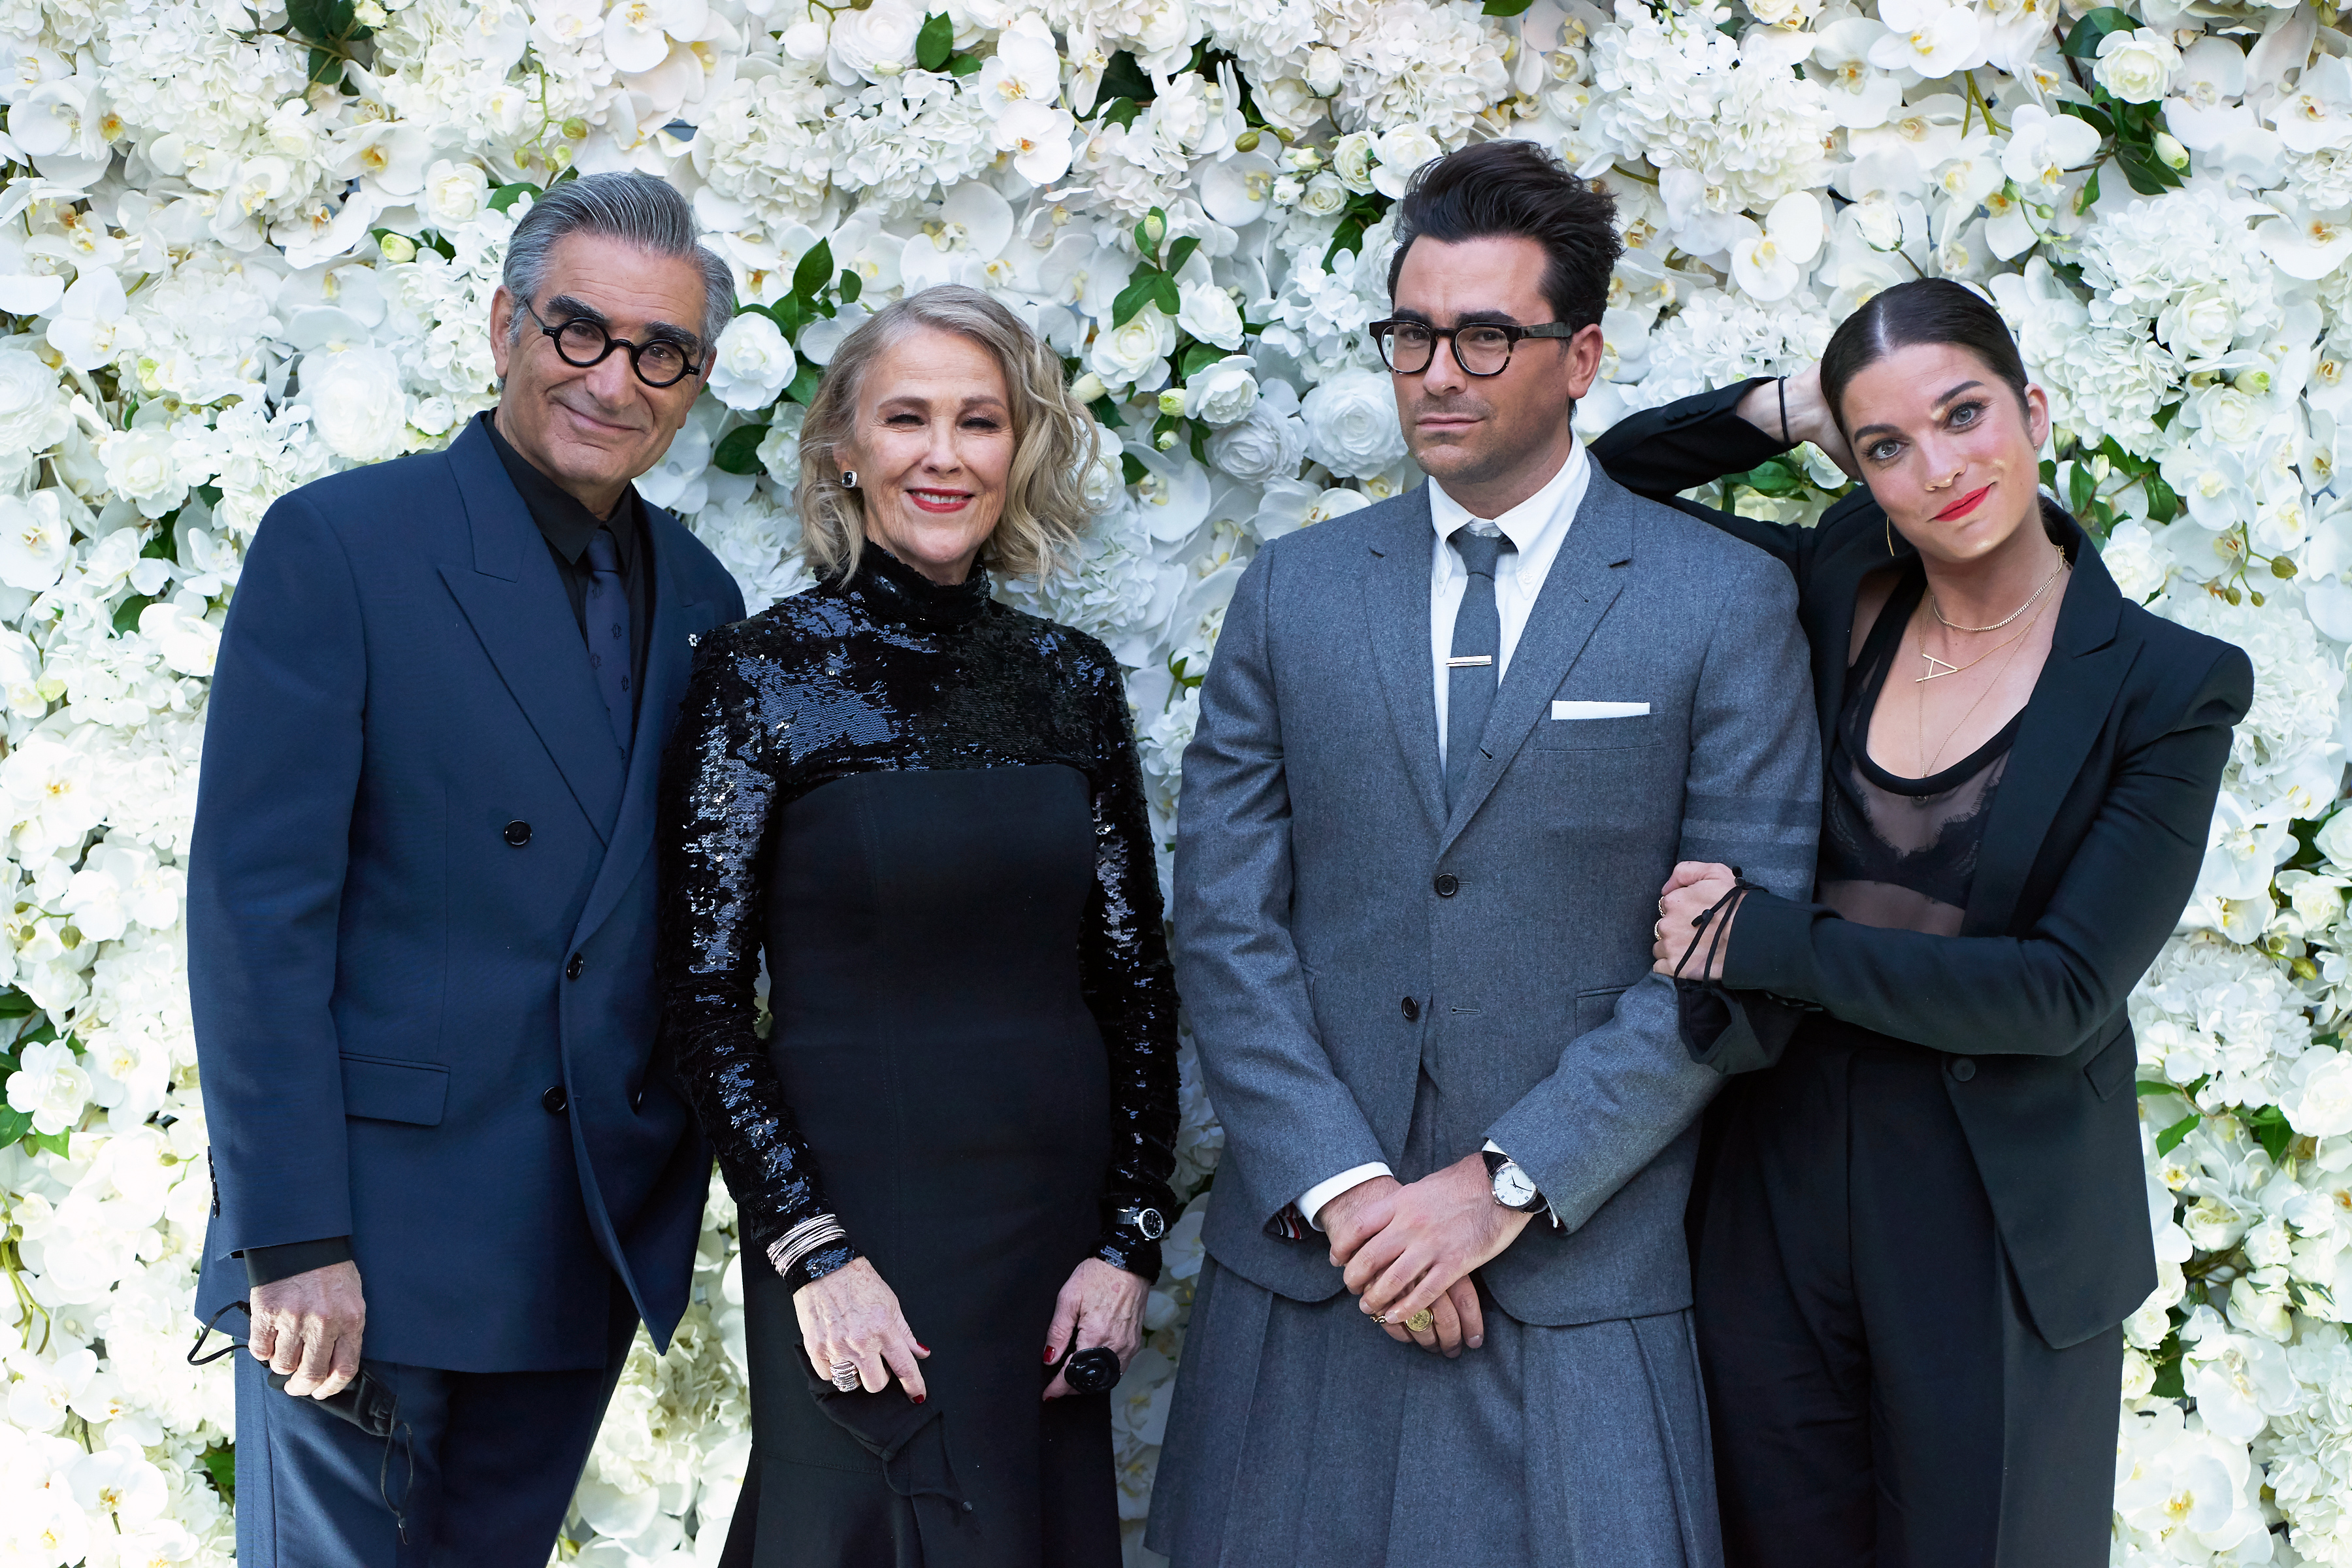 Eugene Levy, Catherine O'Hara, Dan Levy and Annie Murphy arrive at the Schitt's Creek Emmys event.